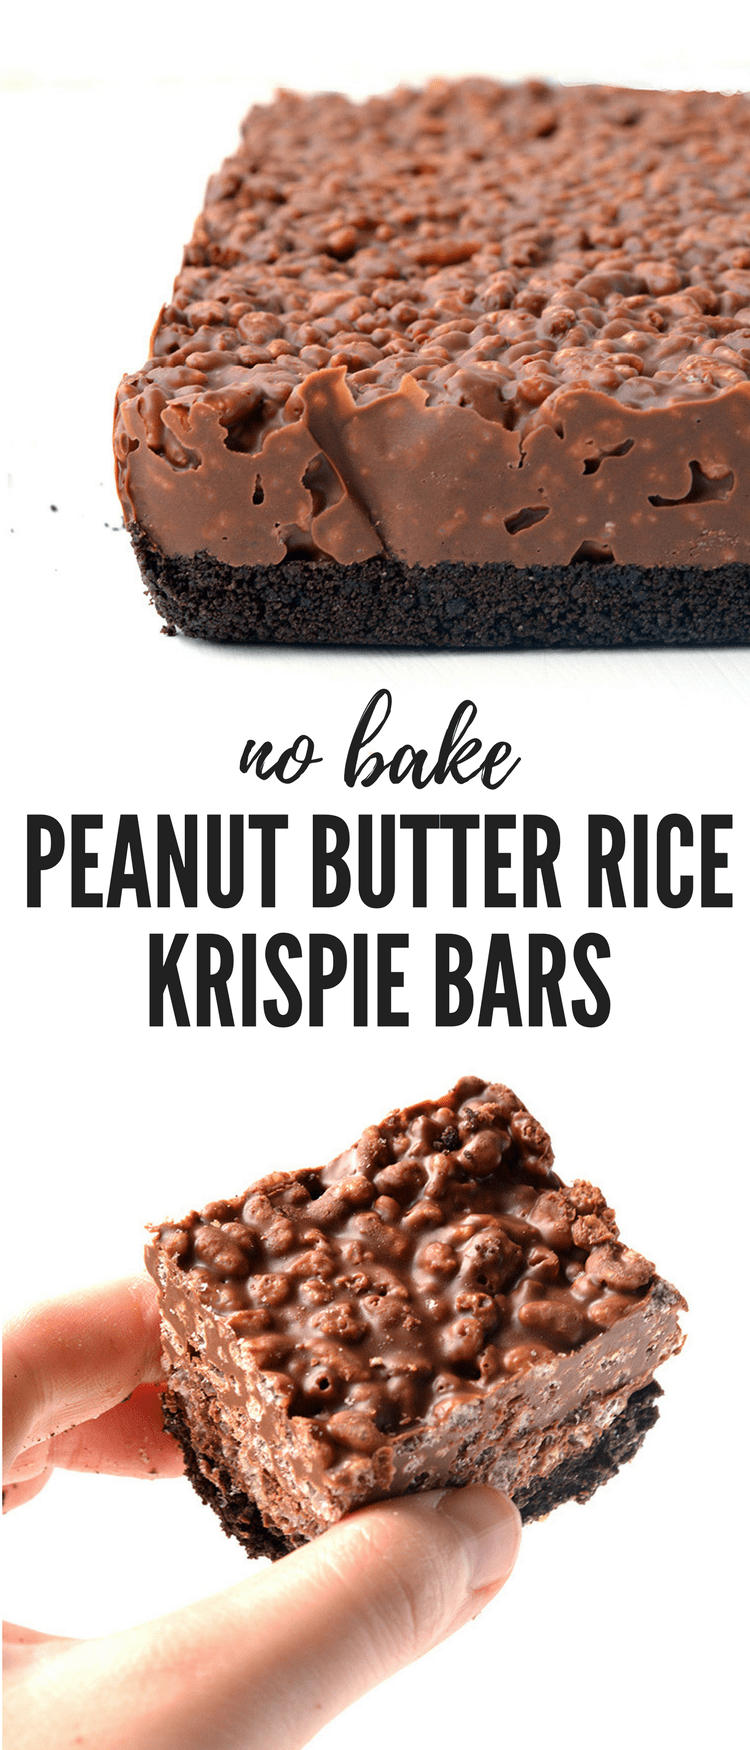 Amazing no bake Peanut Butter Rice Krispie Bars with an Oreo crust. You only need 6 ingredients to make these gorgeous chocolate treats! Recipe from sweetestmenu.com #chocolate #peanutbutter #oreo #dessert #baking #ricekrispies